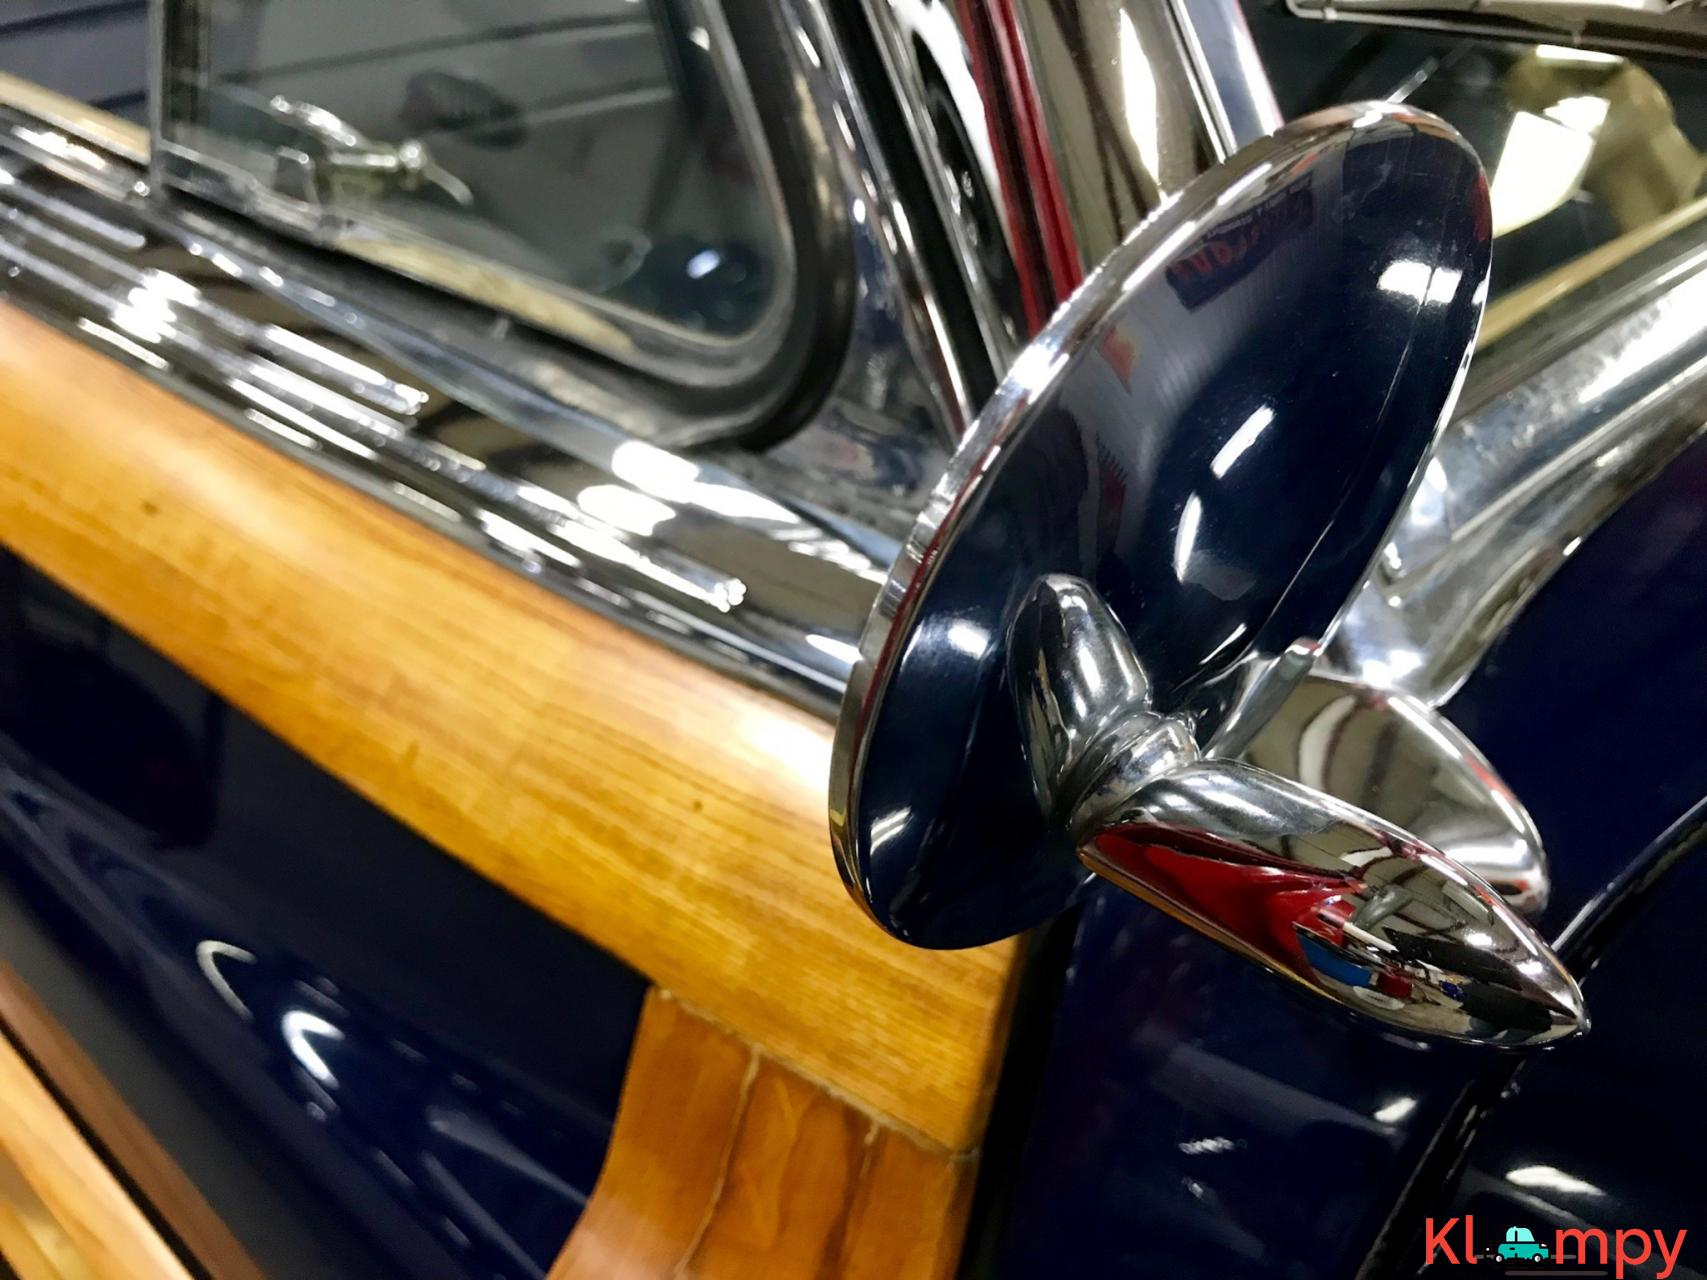 1949 Chrysler Town & Country Convertible - 14/16